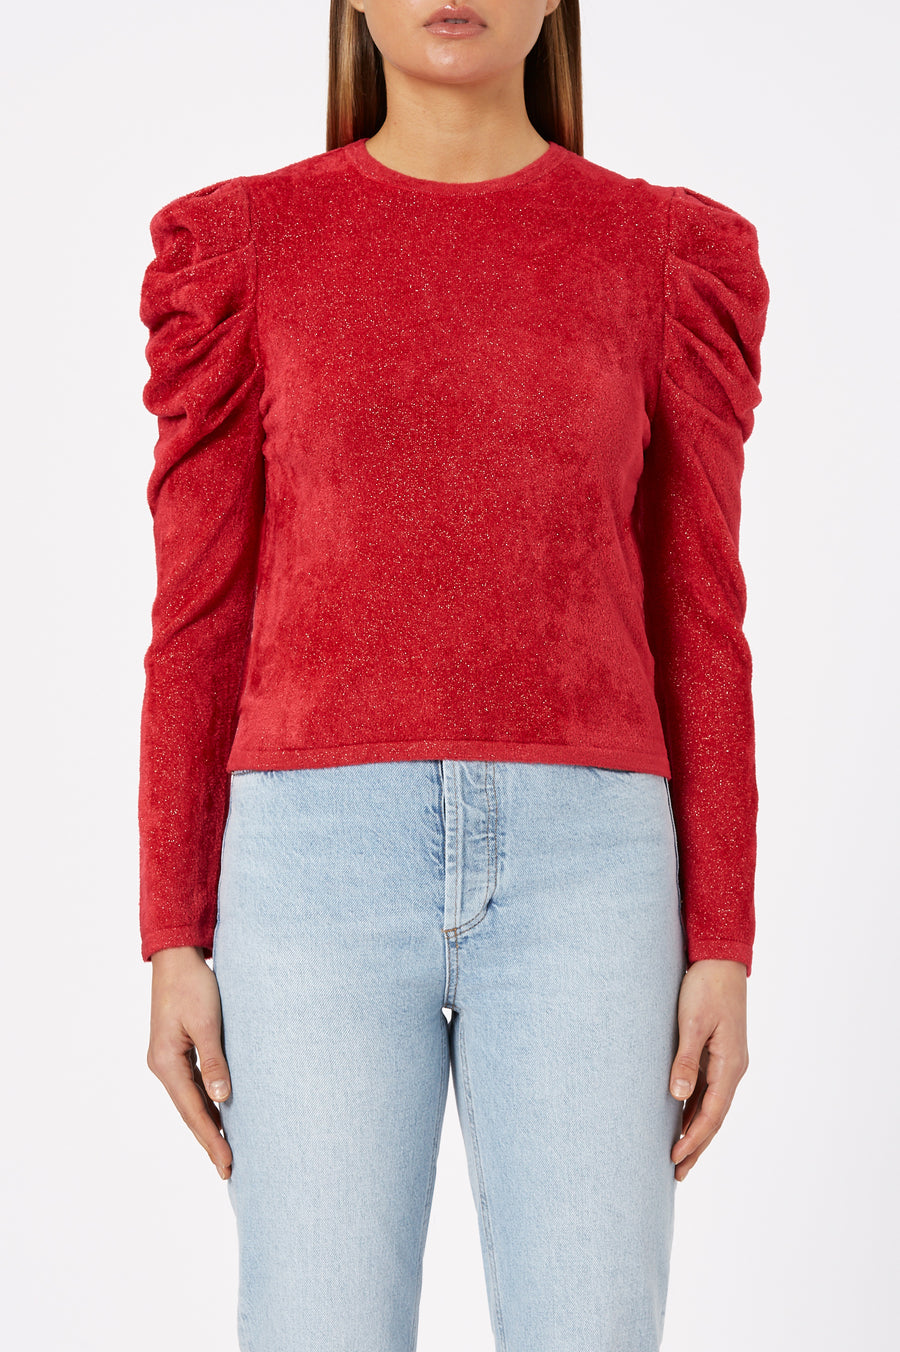 Indulge in elegant basics - the Tinsel Velvet Sweater perfectly captures refined detailing.